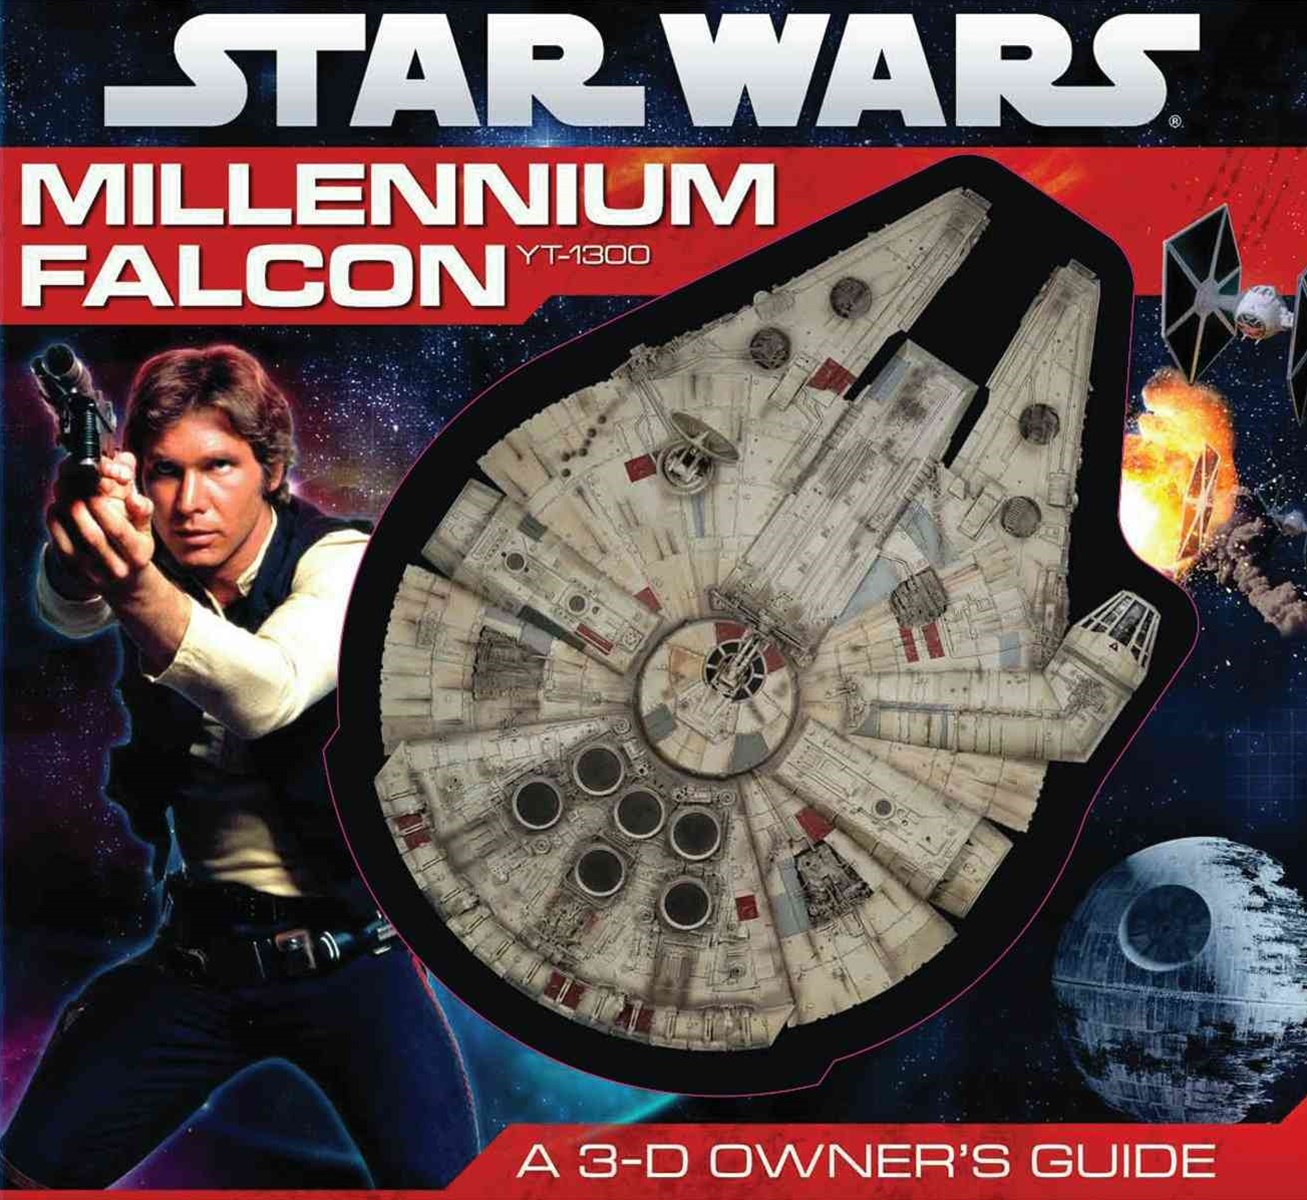 Star Wars: Millennium Falcon: A 3-D Owner's Guide